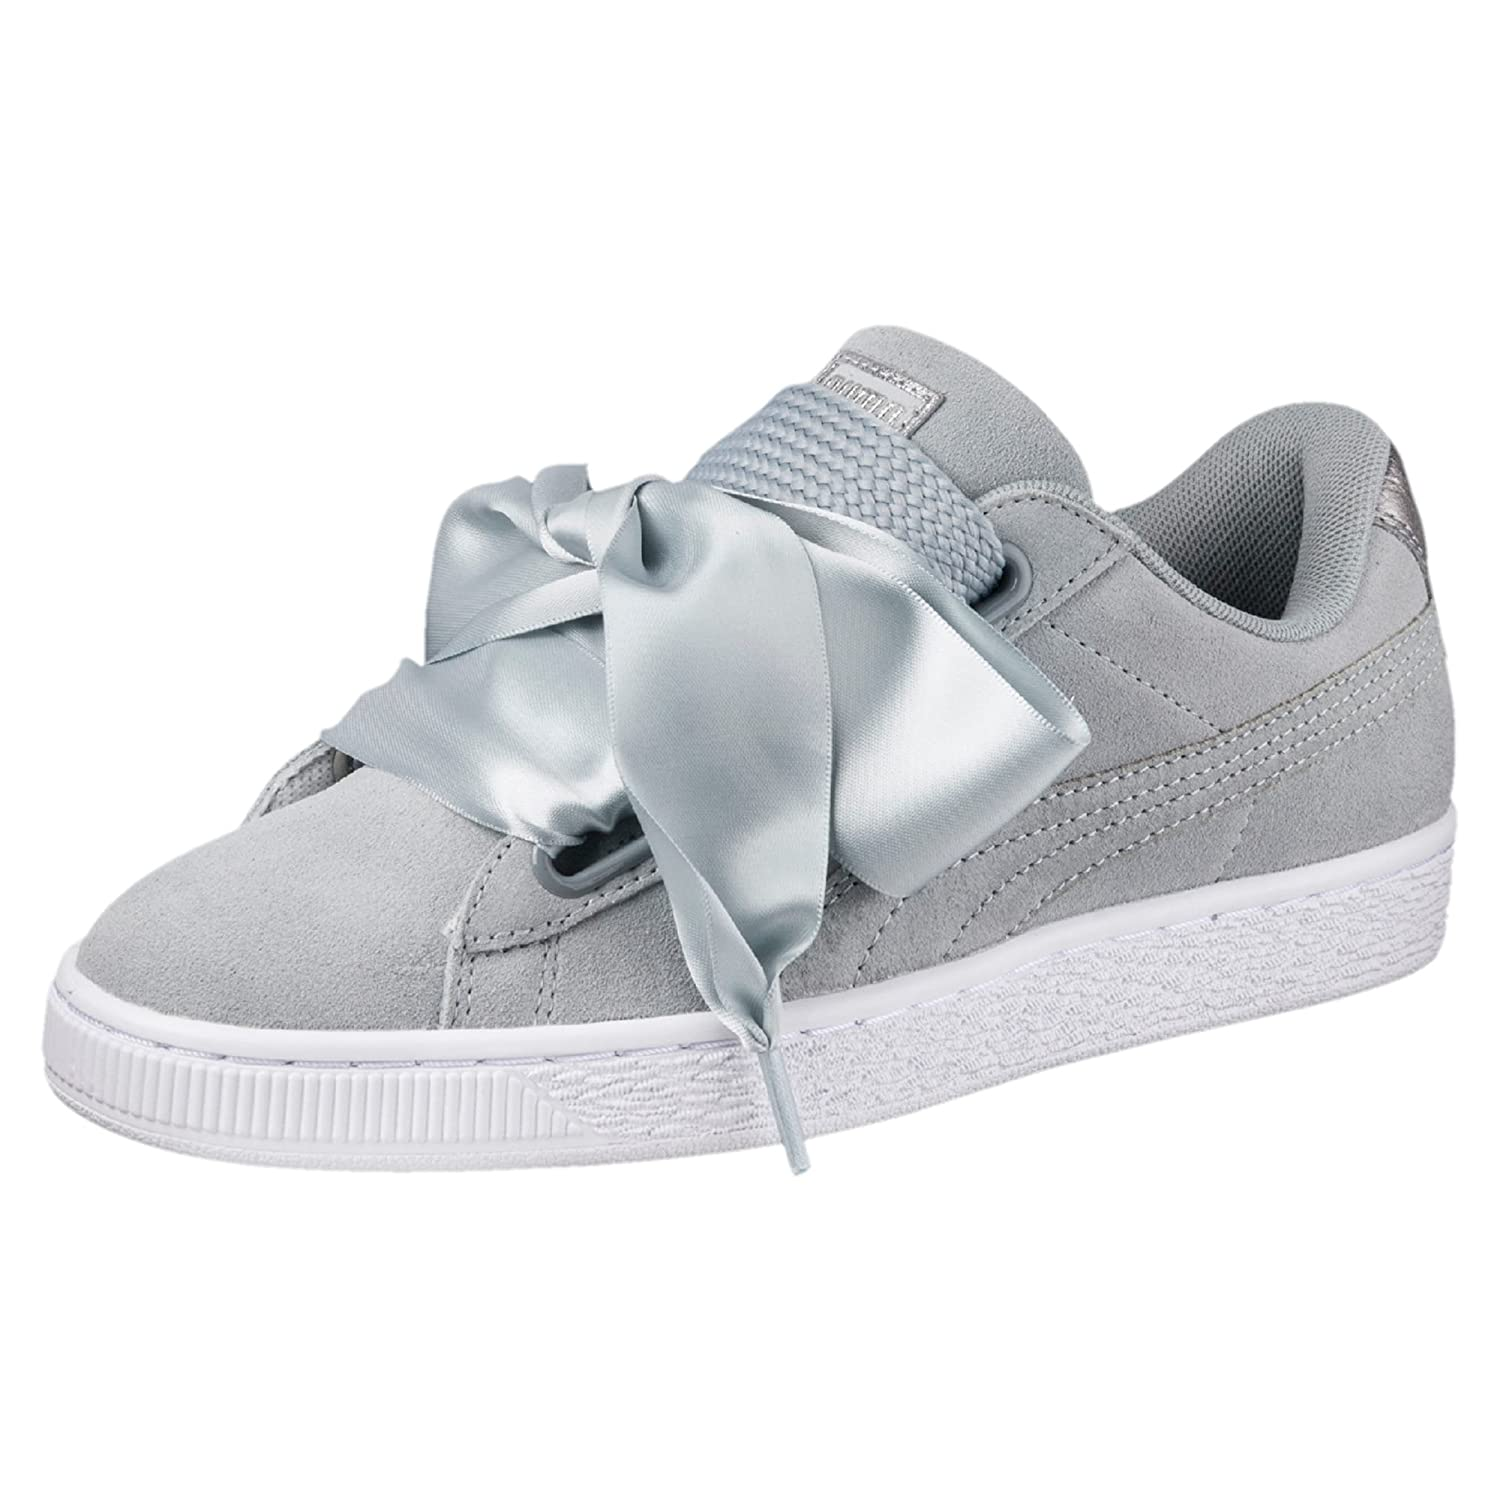 buy popular 3c50a 1631a Puma Women's Suede Heart Safari WN's Grey Sneakers - 6 UK ...